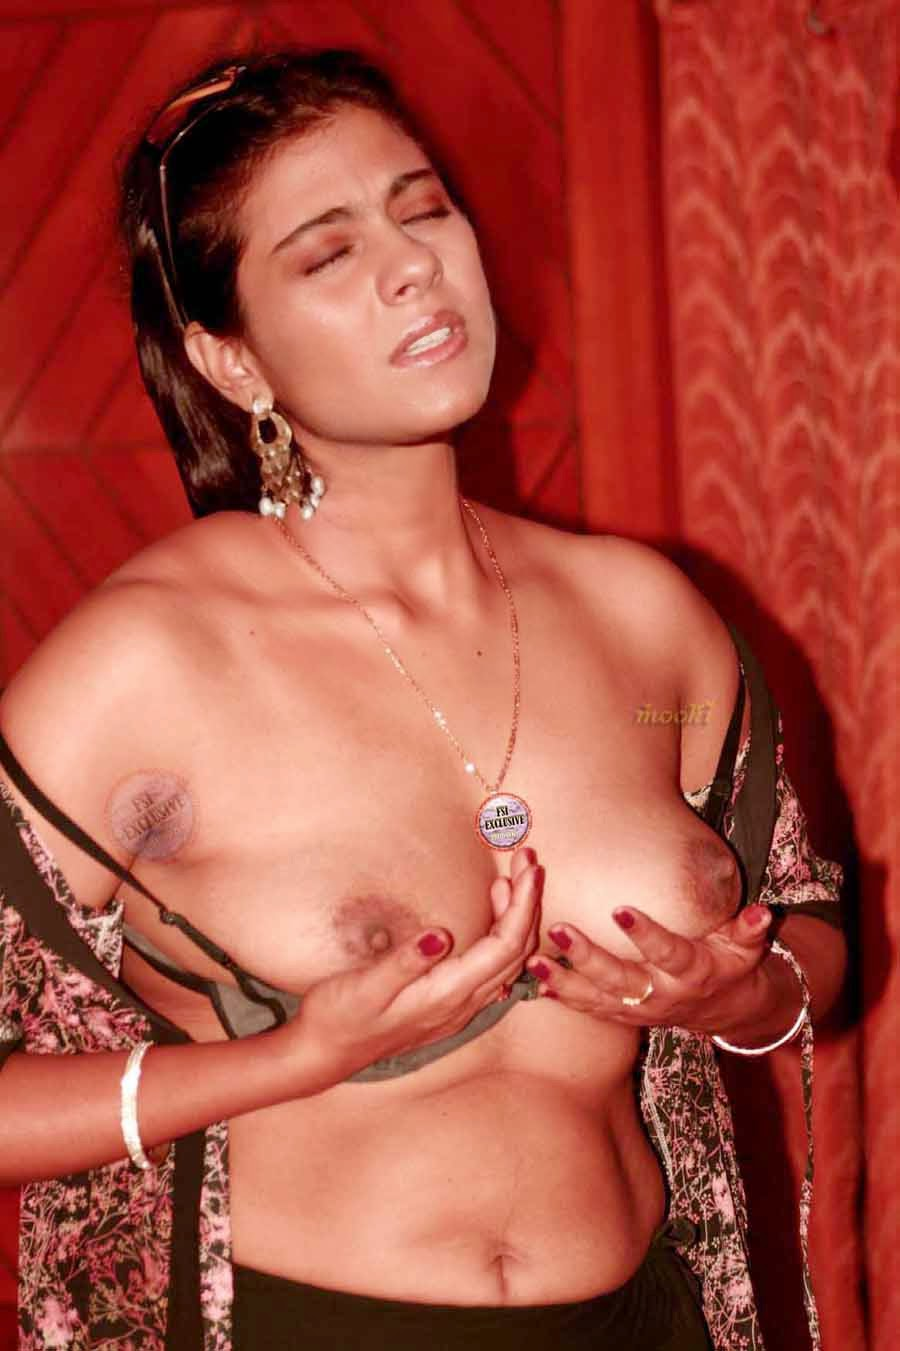 Indian Nude Hot Pics